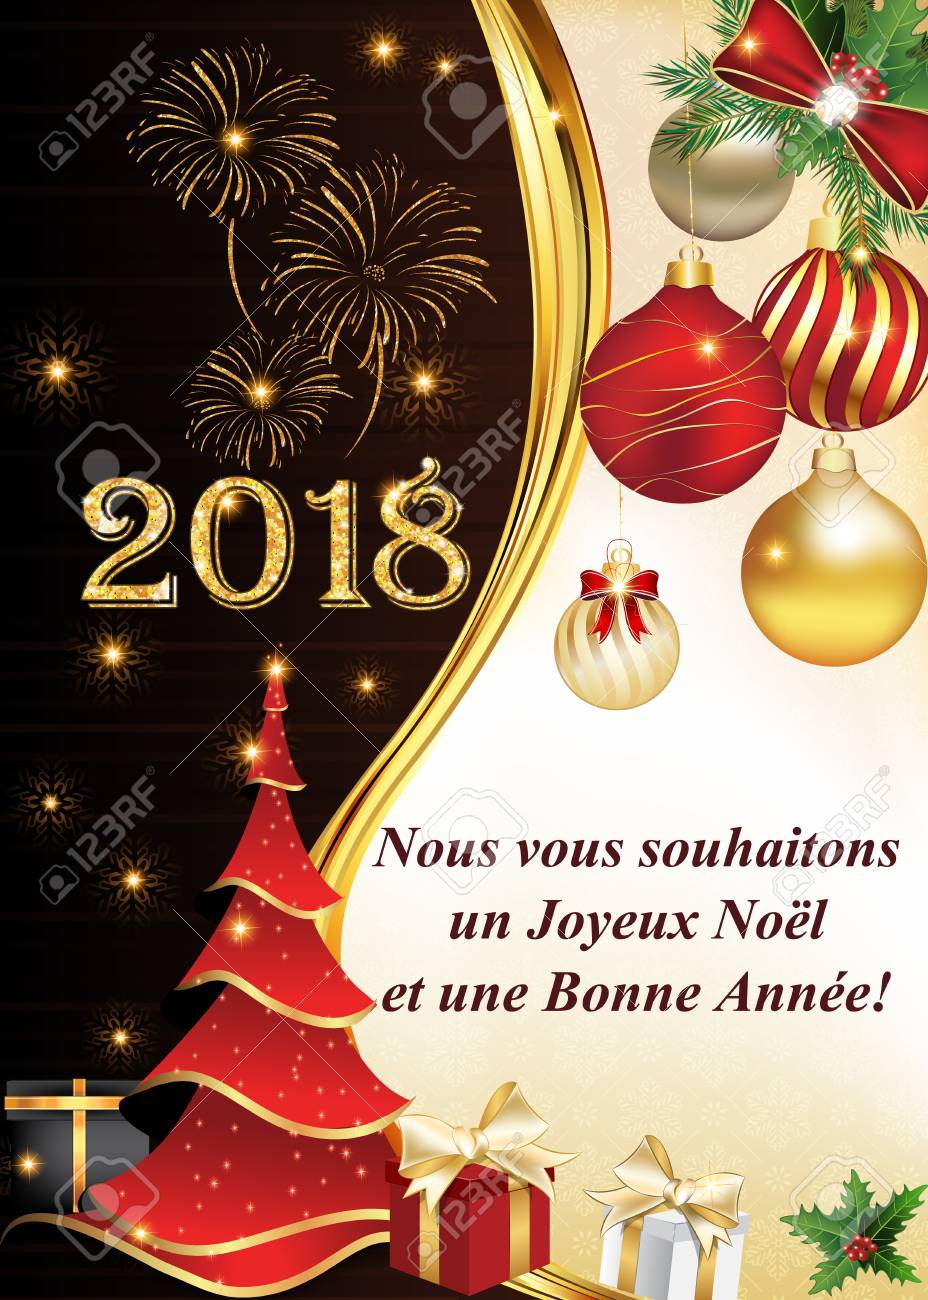 Joyeux Noel Twilight.French Greeting Card For Winter Holidays We Wish You A Merry